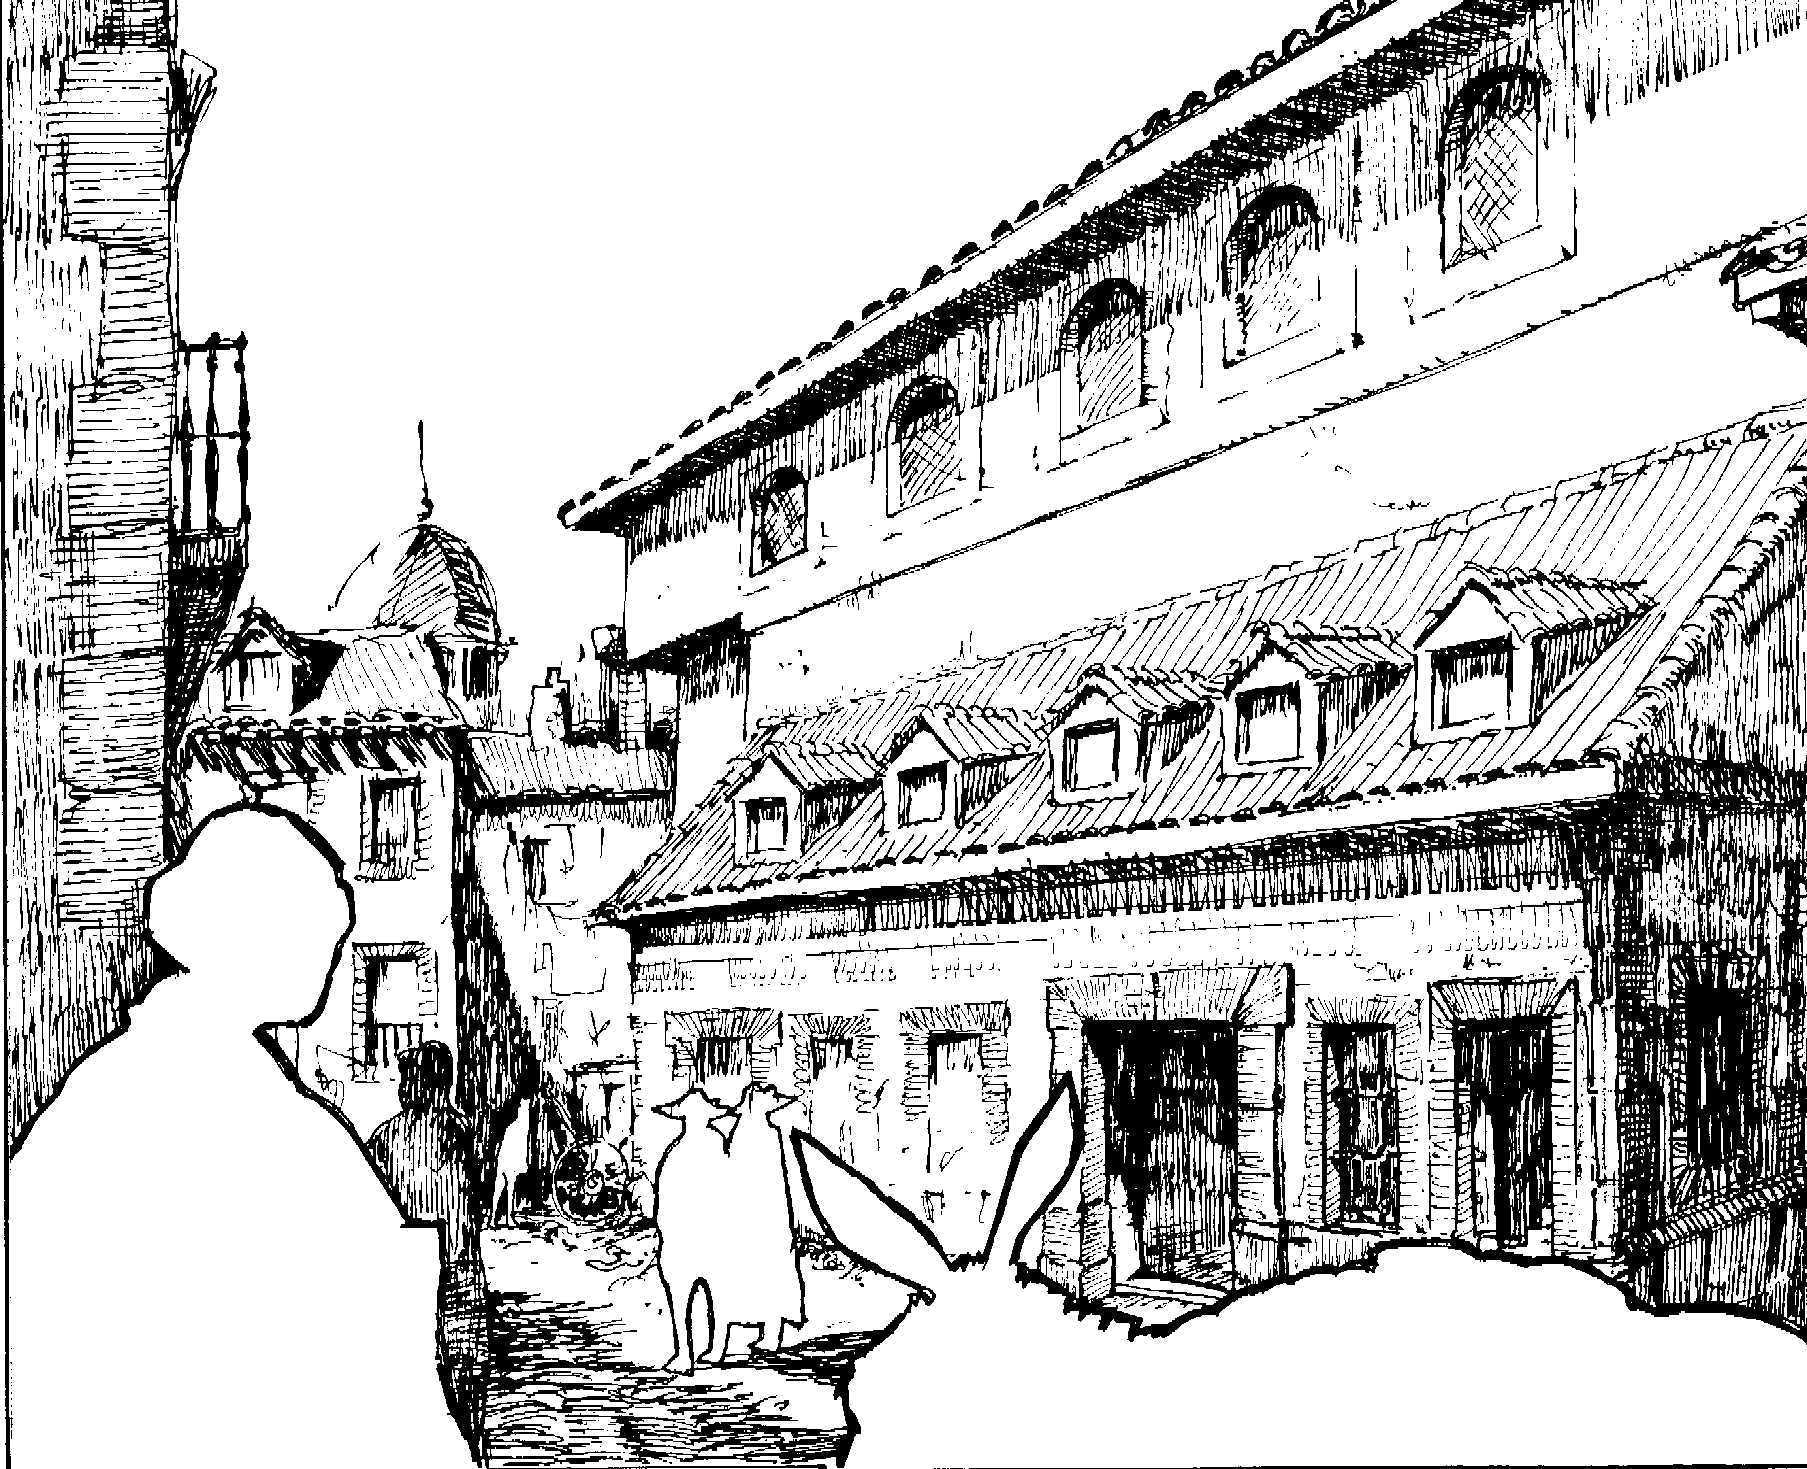 The Principe Theater In Madrid In The Seventeenth Century